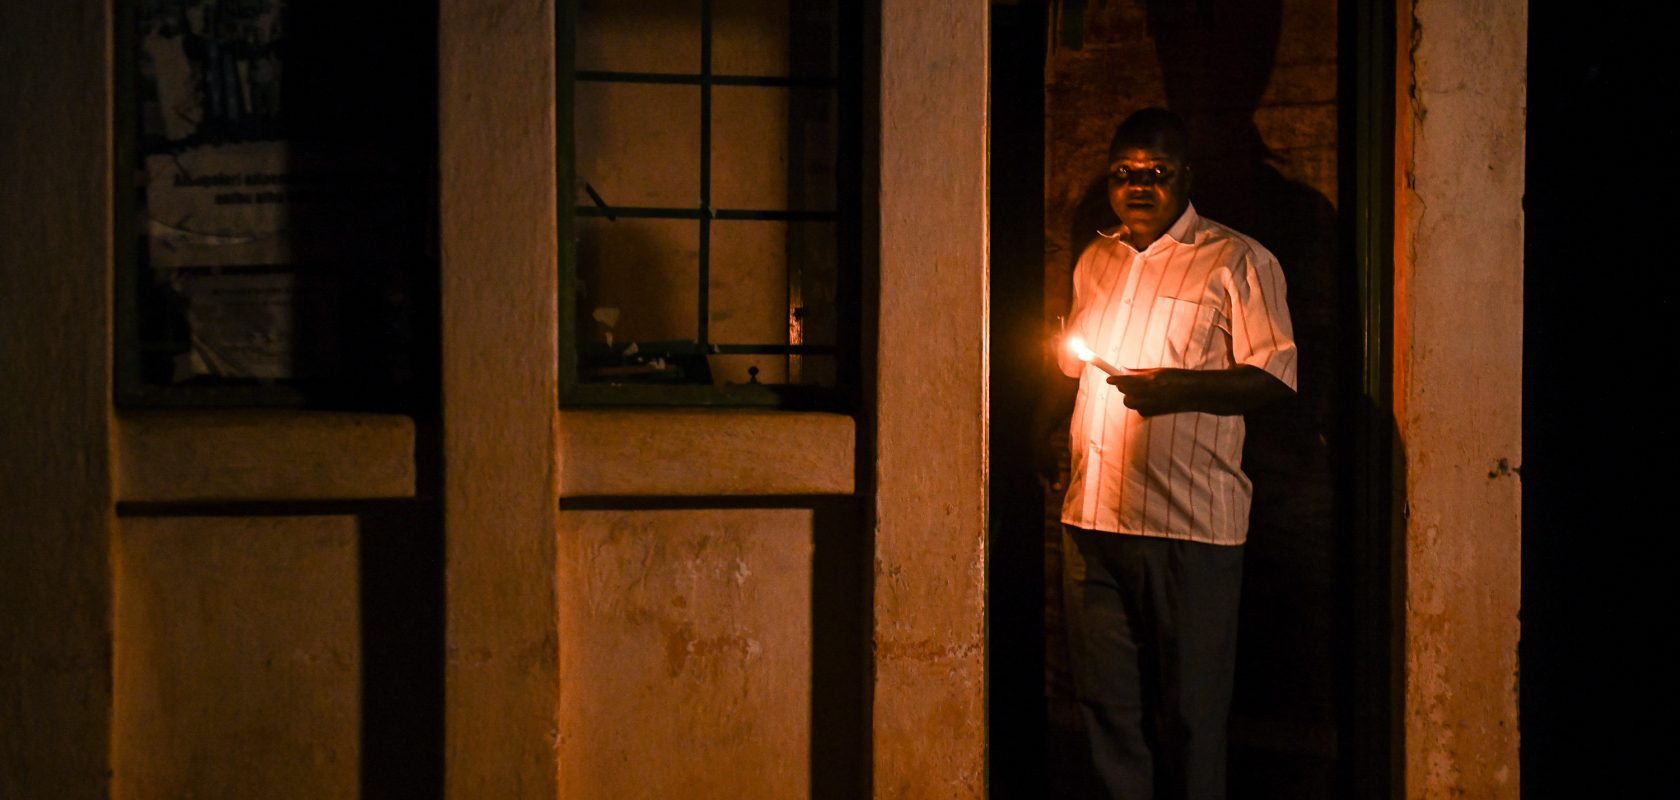 TA Kasakula holding a candle in a doorway.